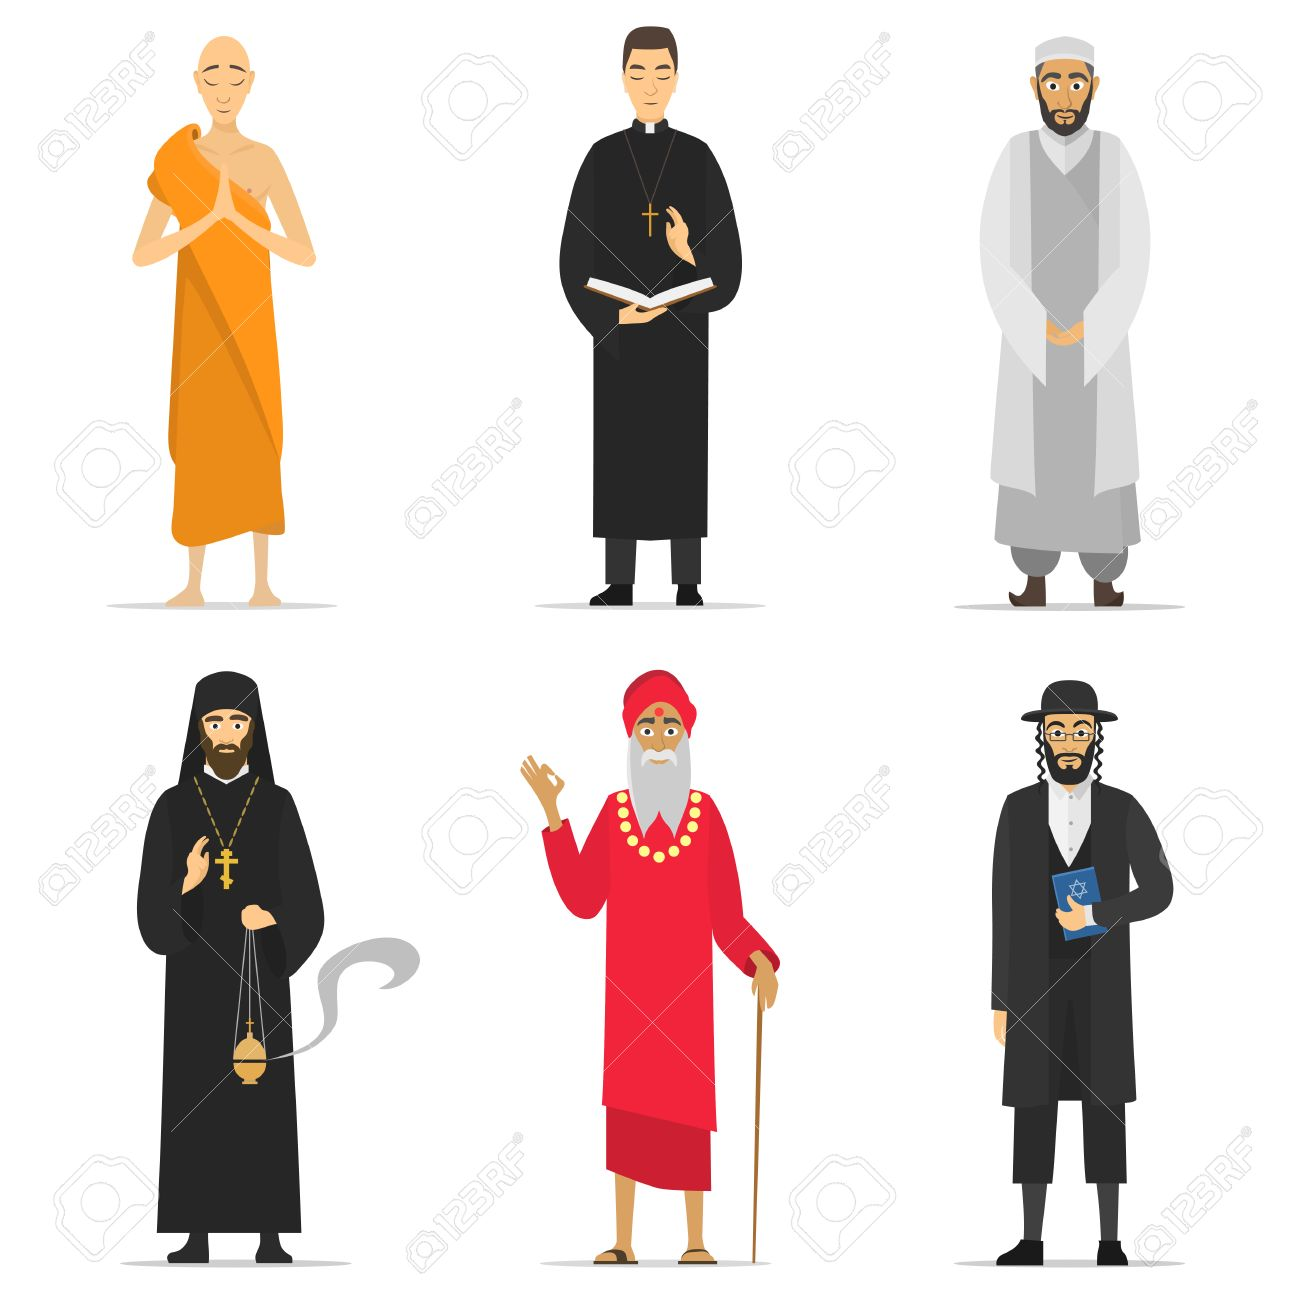 1618 buddhist monk stock vector illustration and royalty free isolated religion ministers monks and priest greeting buddhist catholic muslim kristyandbryce Image collections